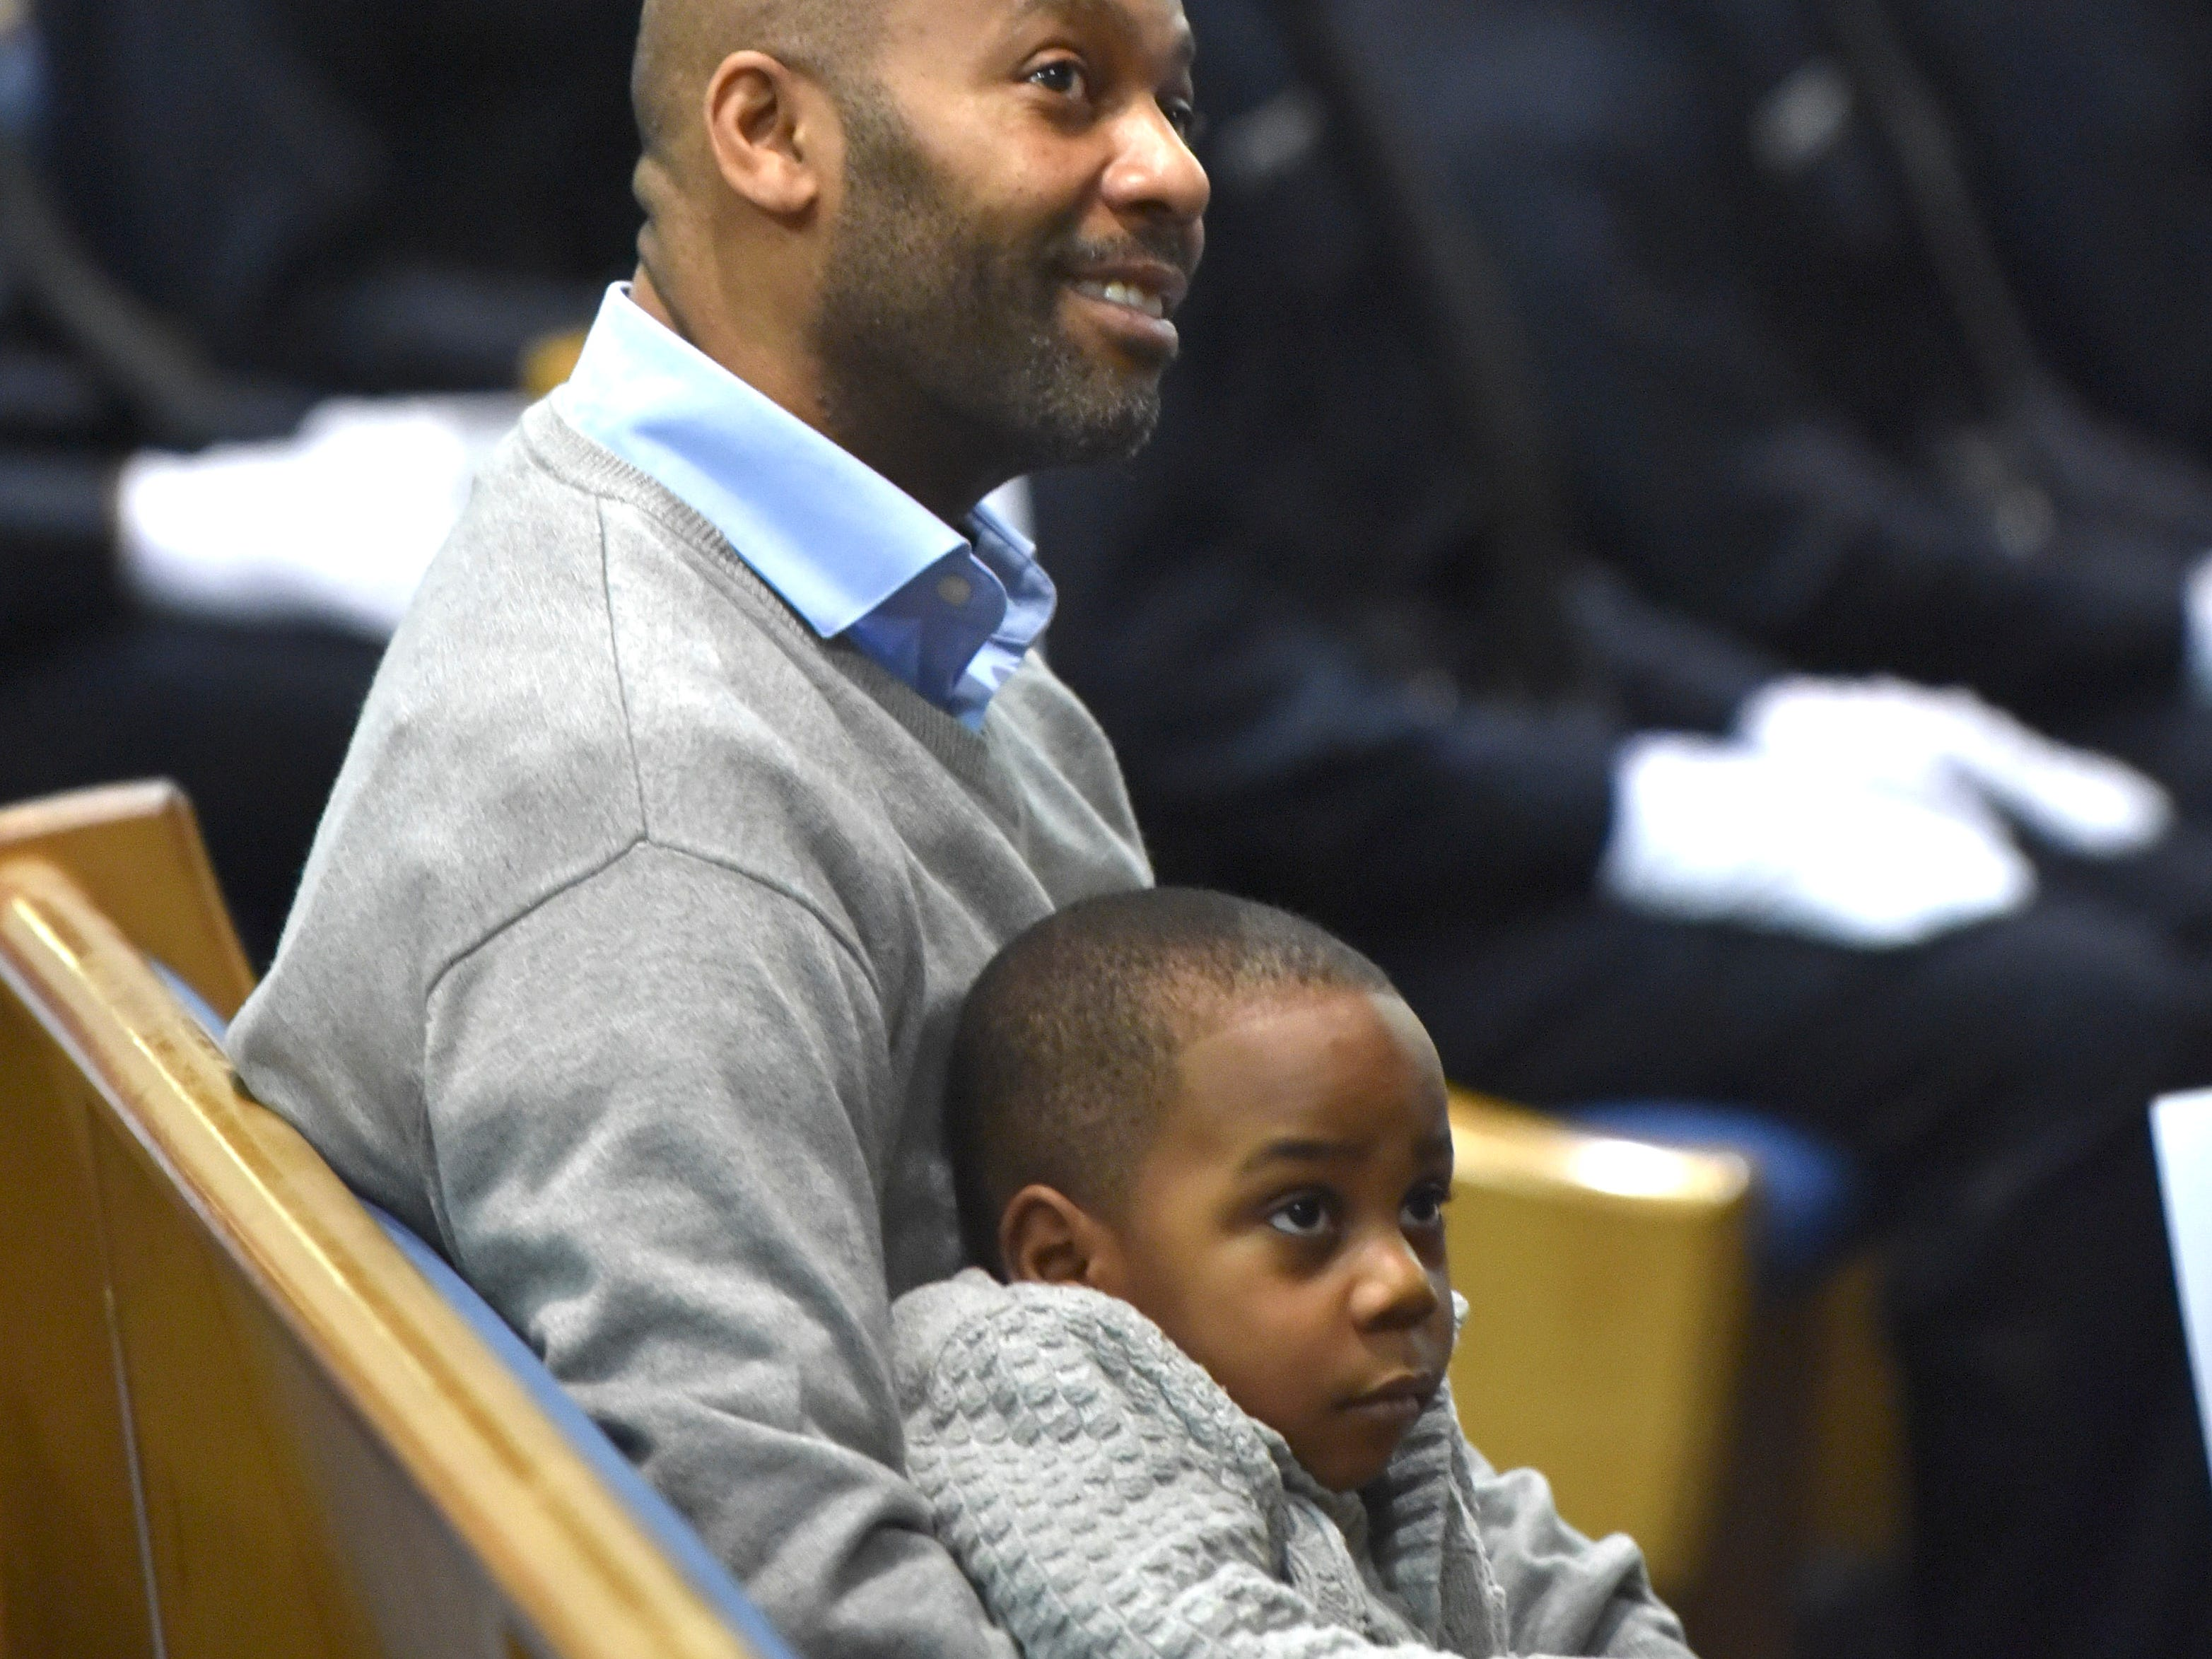 Robert Mosley of Detroit watches the graduation of his daughter, Bianca Mosley, with son Jaxon Mosley, 3.